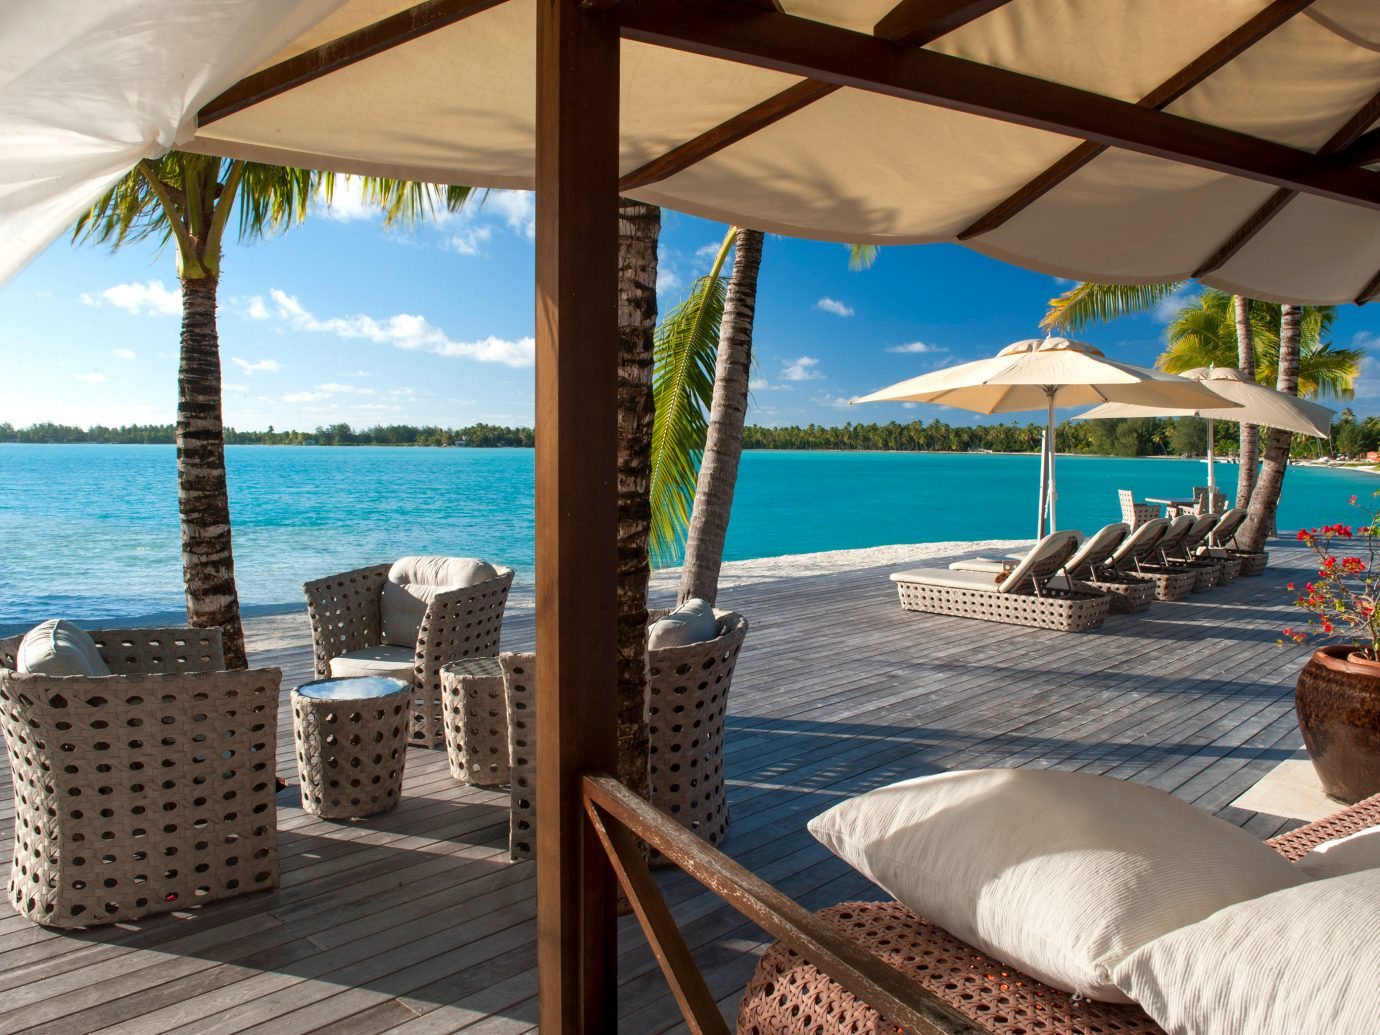 Beach Hotels Lounge Scenic views chair umbrella property leisure Resort vacation caribbean swimming pool estate Villa cottage overlooking furniture several